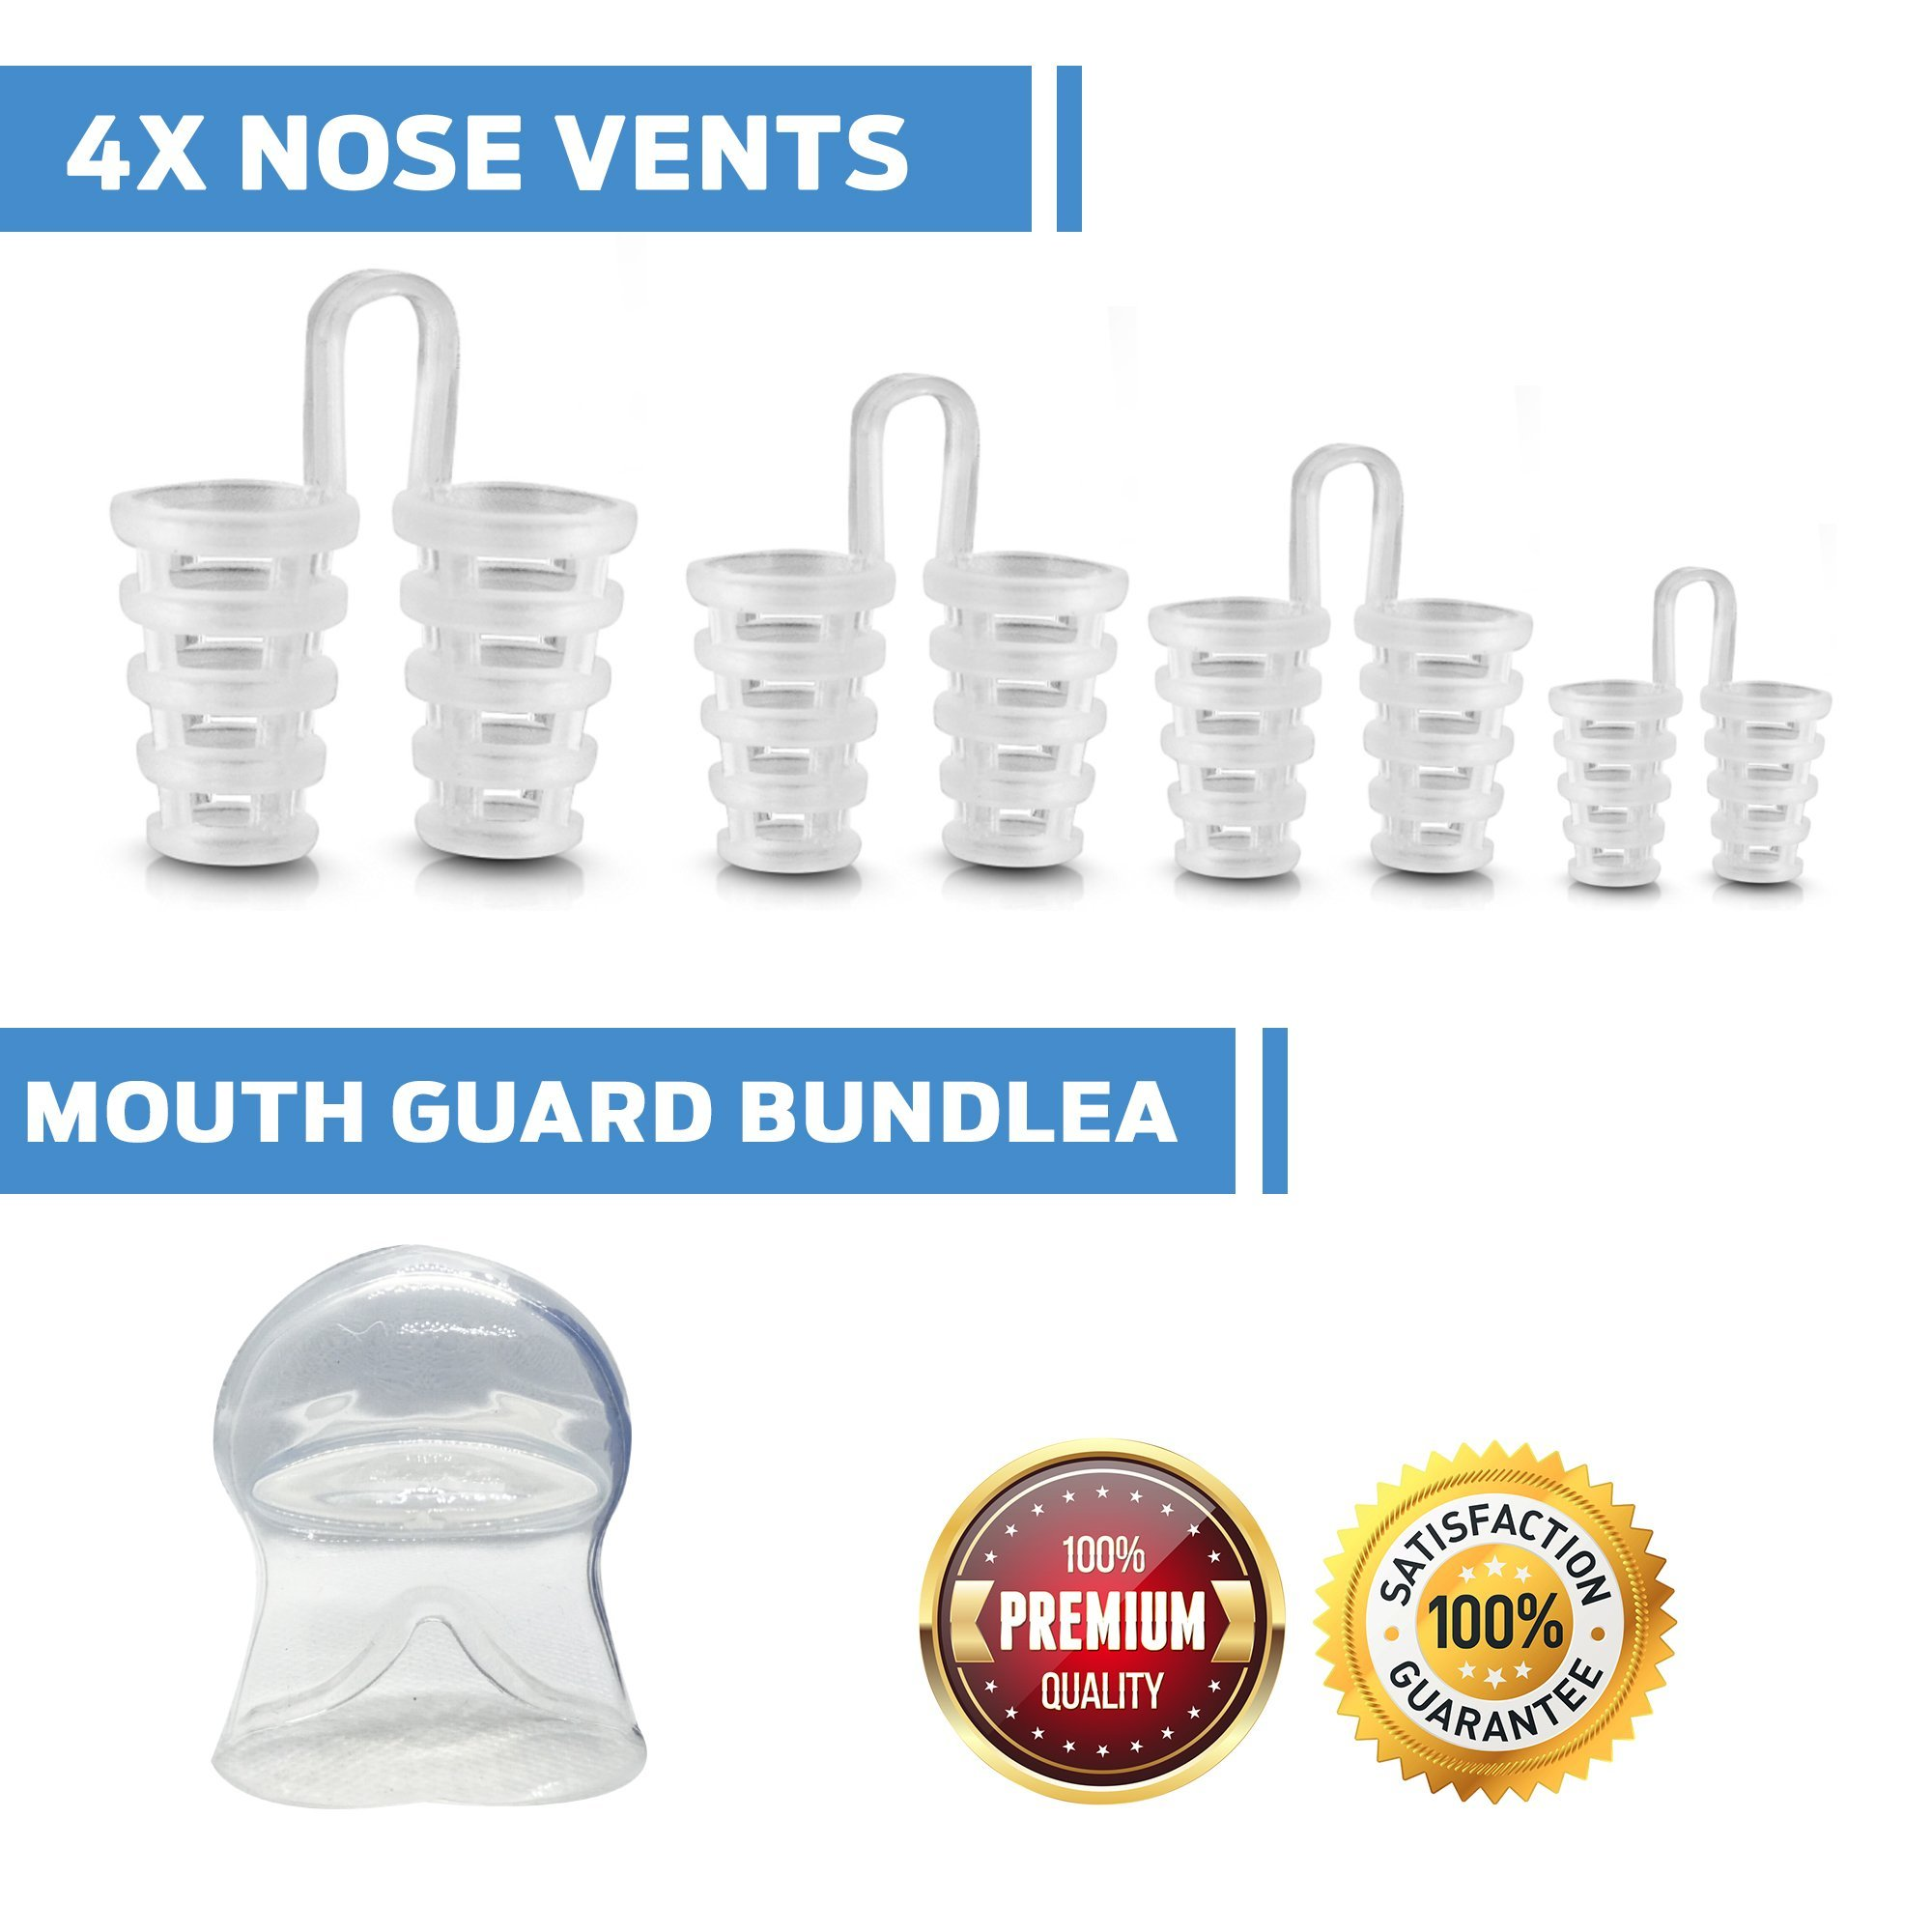 CLOUDSLEEP Anti Snoring Nose Vents Kit: 4 Pairs of Nasal Dilators in 4 Sizes + Anti Snore Mouth Guard Bundle| Easy to Use Silicone Snore Stopper Kit| Stop Snoring Solution Snoring Tongue Retainer by CLOUDSLEEP (Image #5)